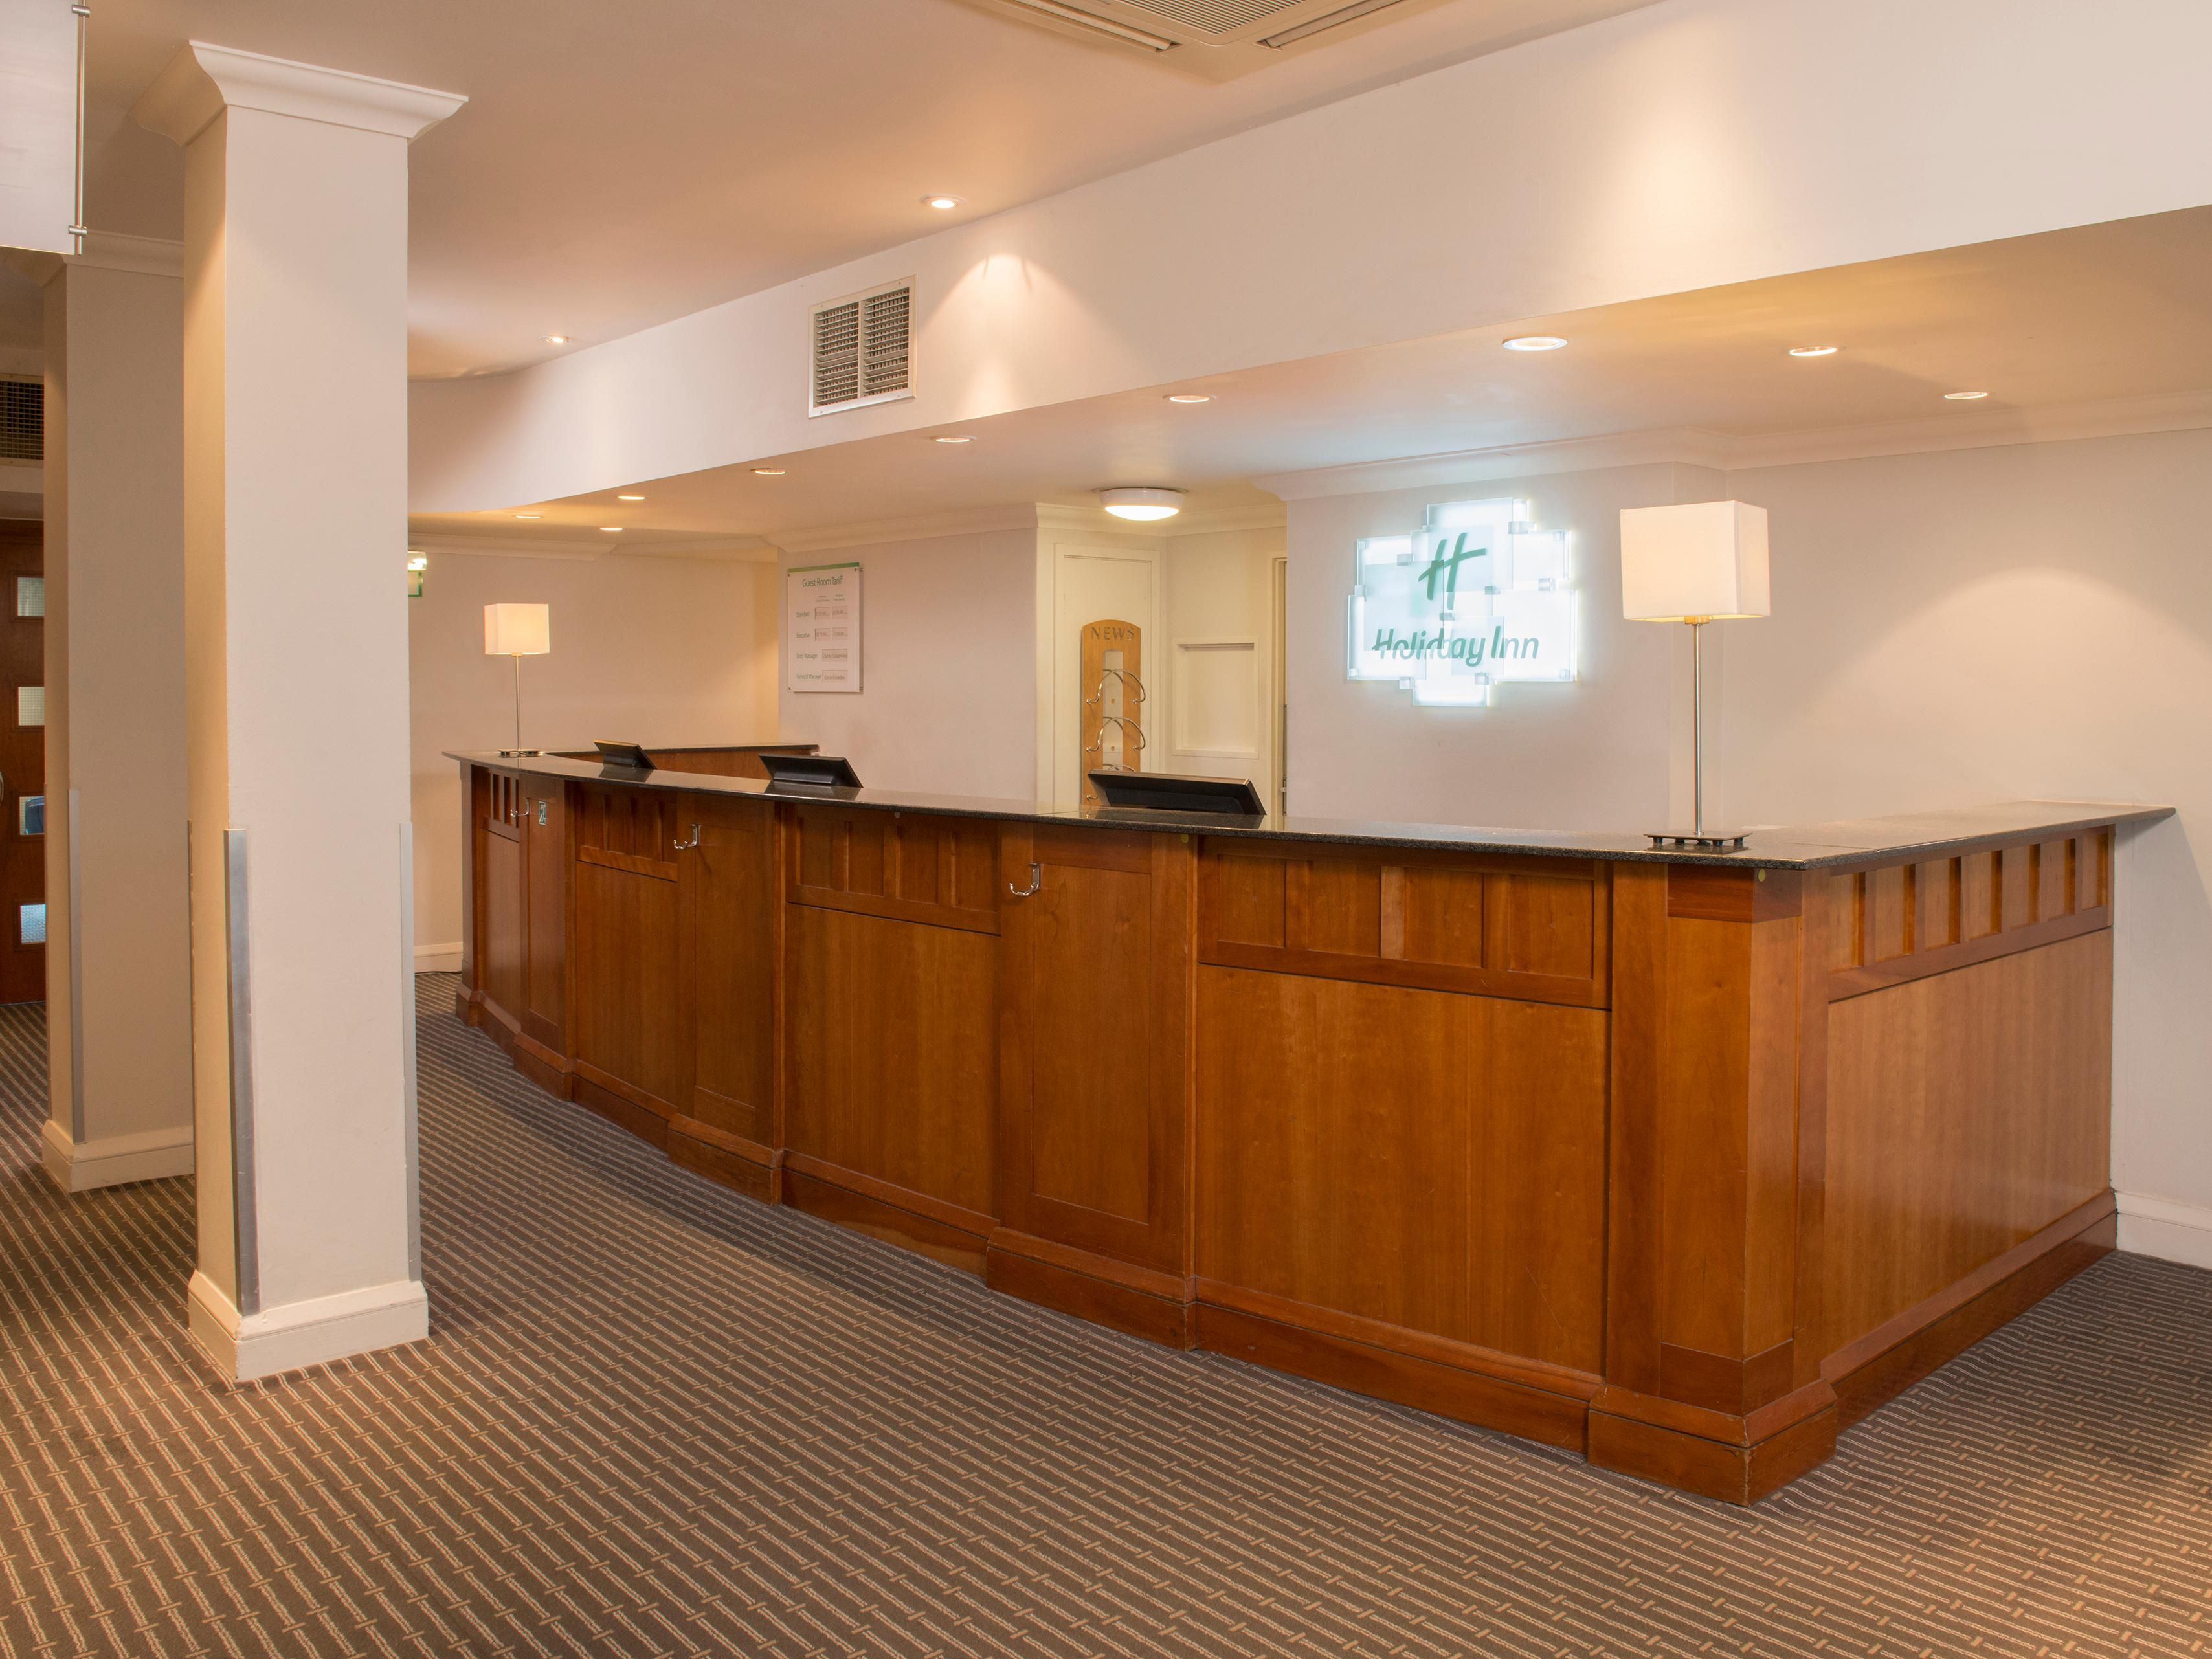 Our Reception staff can assist you with any business centre needs